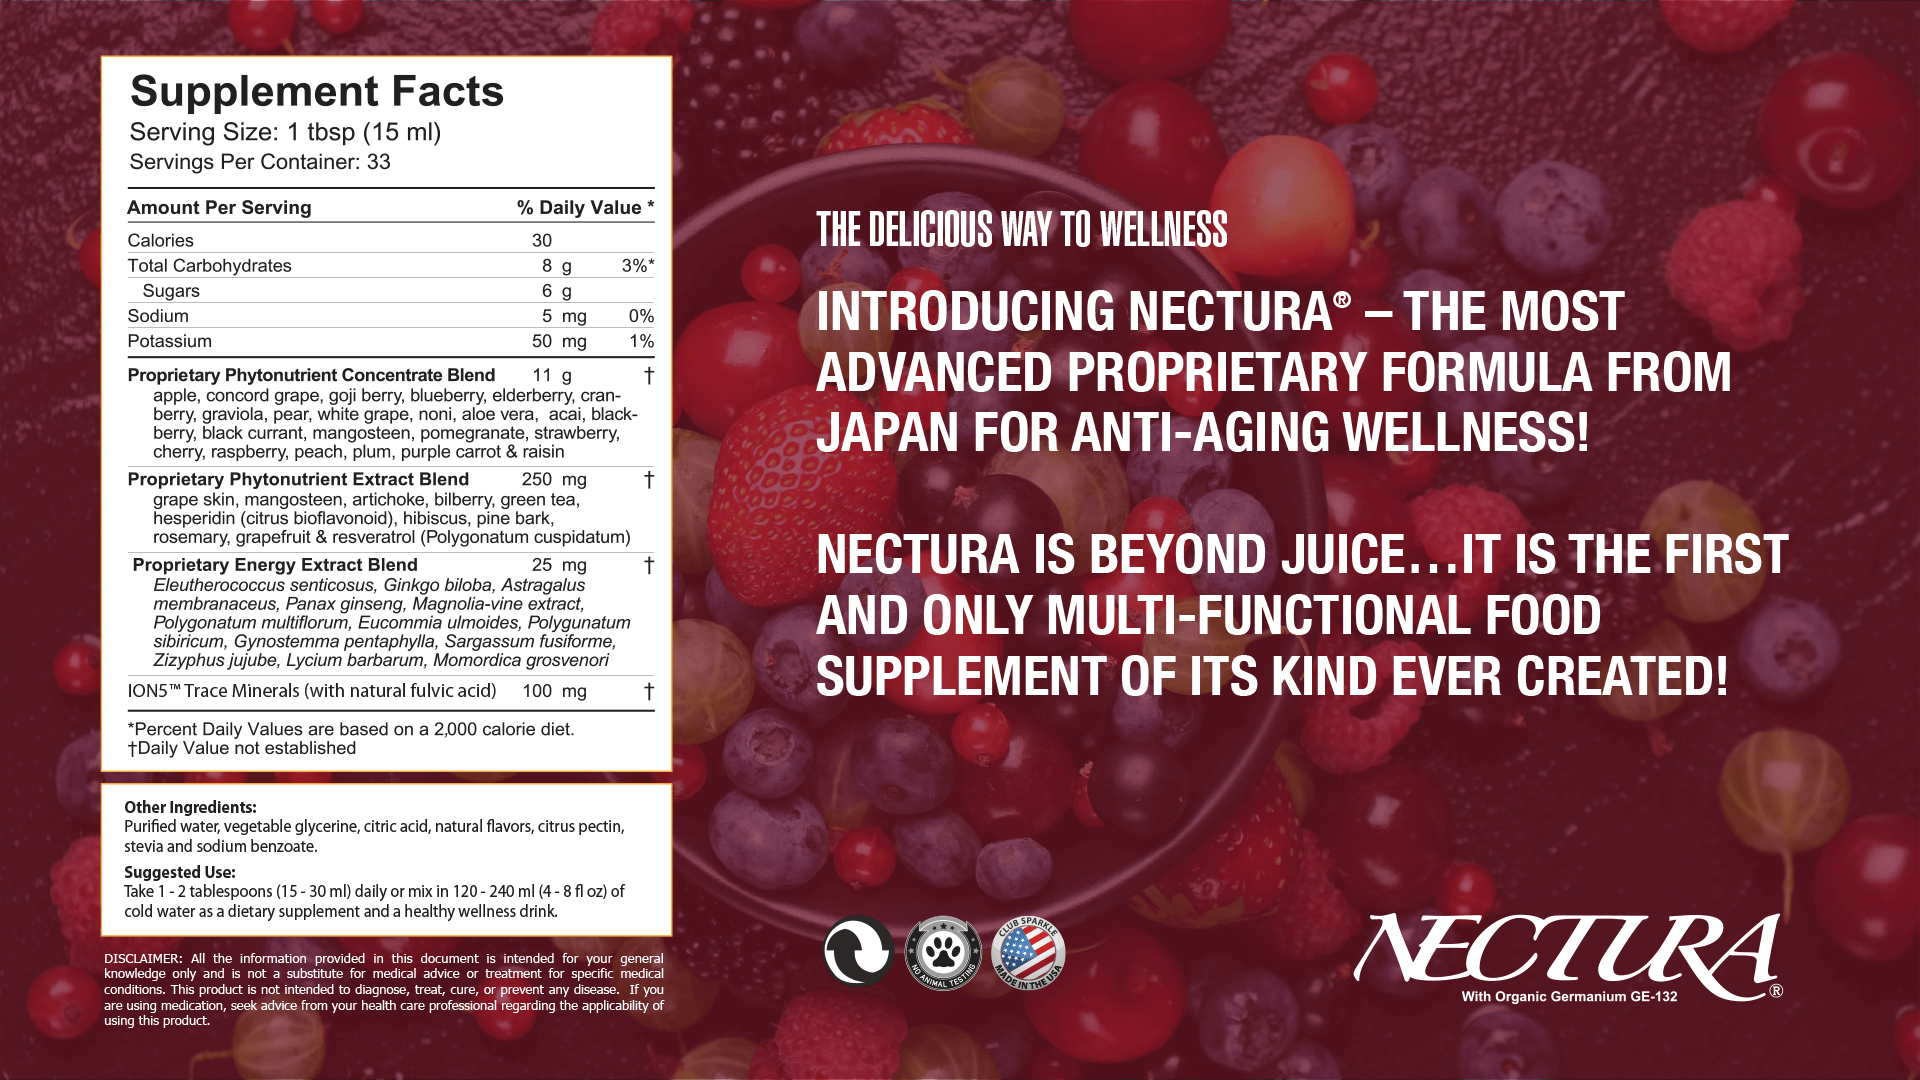 """An advertisement for Nectura that says """"The delicious way to wellness. Introducing Nectura - the most advanced proproetary formila from Japan for anti-aging wellness! Nectura is beyond juice... It is the first and only multi-functional food supplement of its kind ever created!"""""""